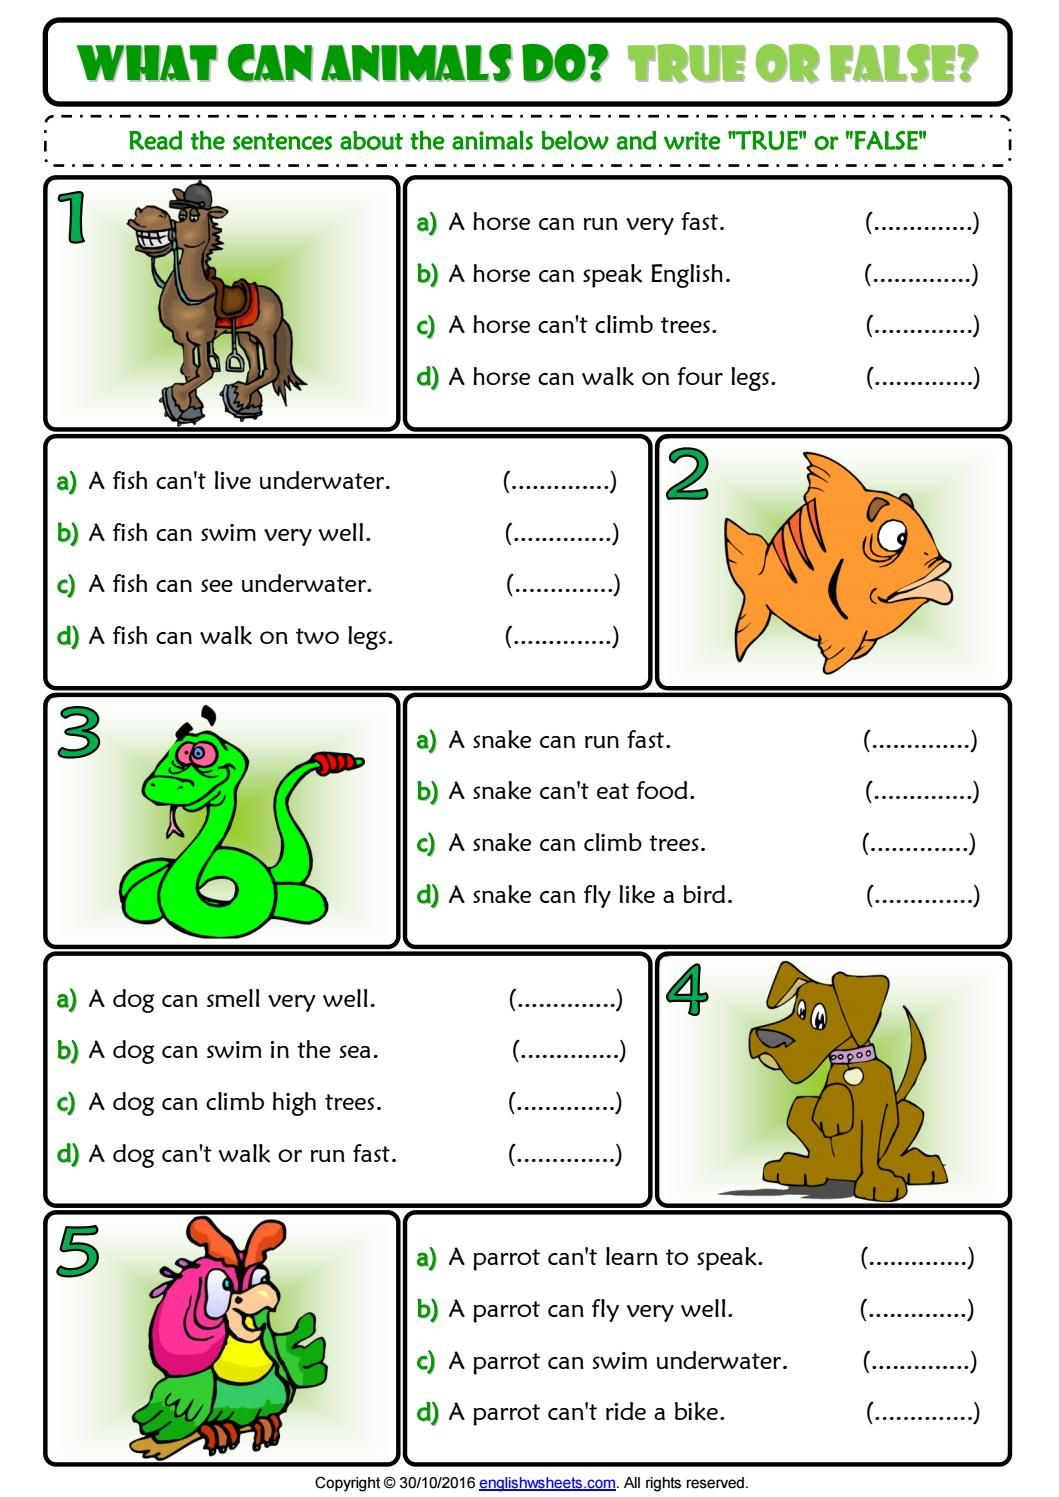 Ability And Inability True Or False Esl Exercise Worksheet For Kids Worksheets For Kids Esl Worksheets For Beginners English Lessons For Kids [ 1497 x 1059 Pixel ]